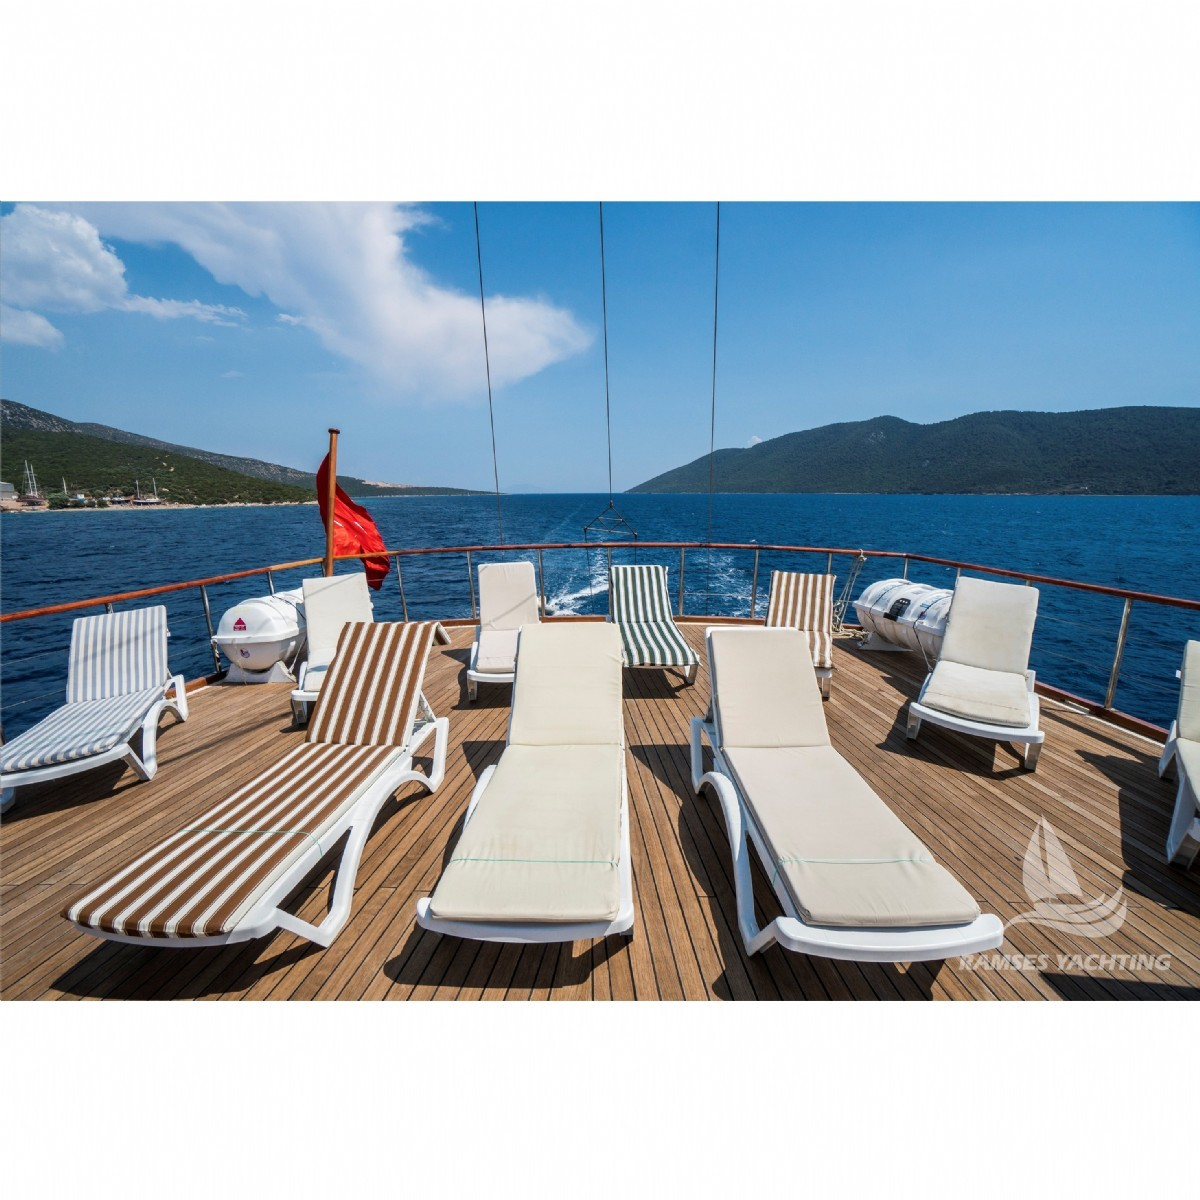 Deluxe Boats | D160 - Gulet Yacht Charter Turkey for 32 Person | D160 - Private Yacht Charter for 32 Persons |  |